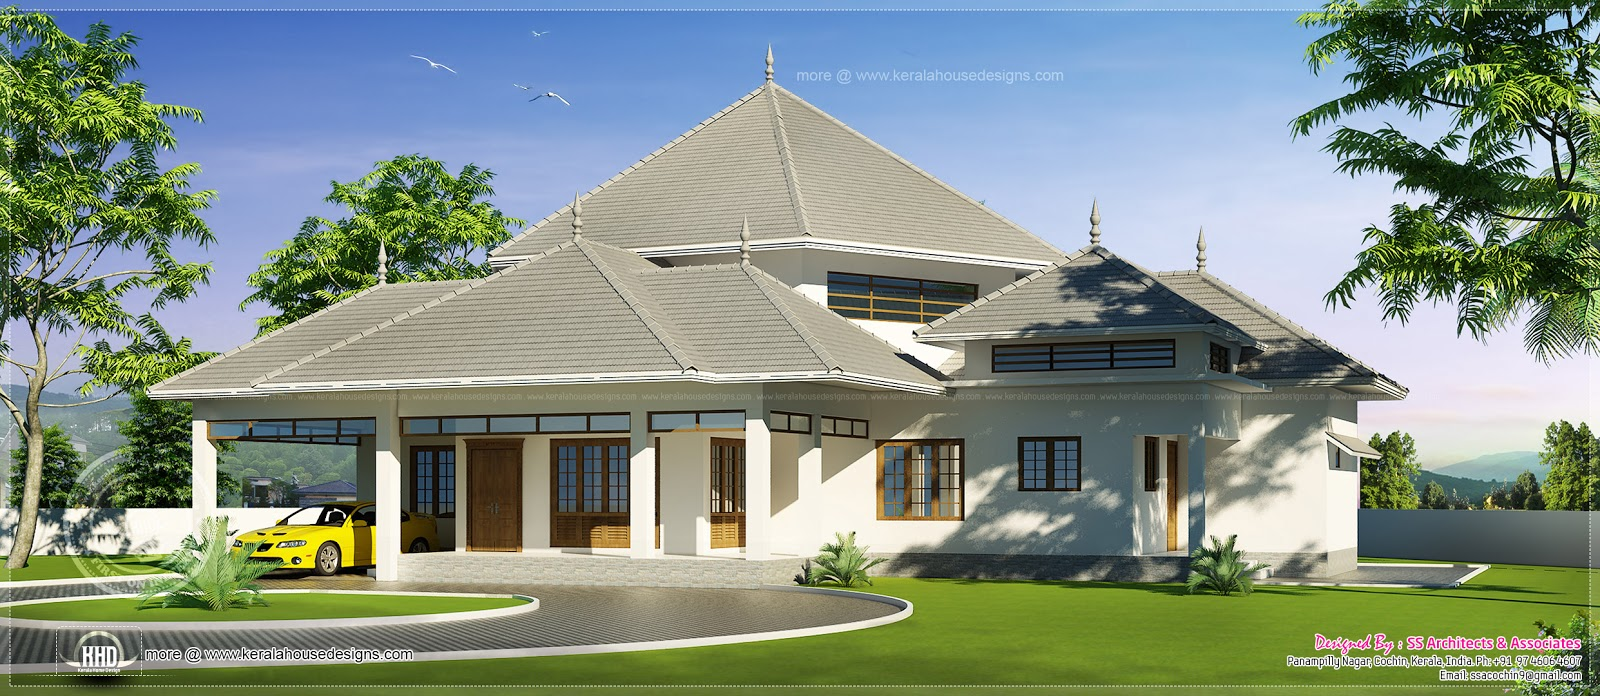 Kerala style modern roof house in 2600 kerala for Contemporary style homes in kerala